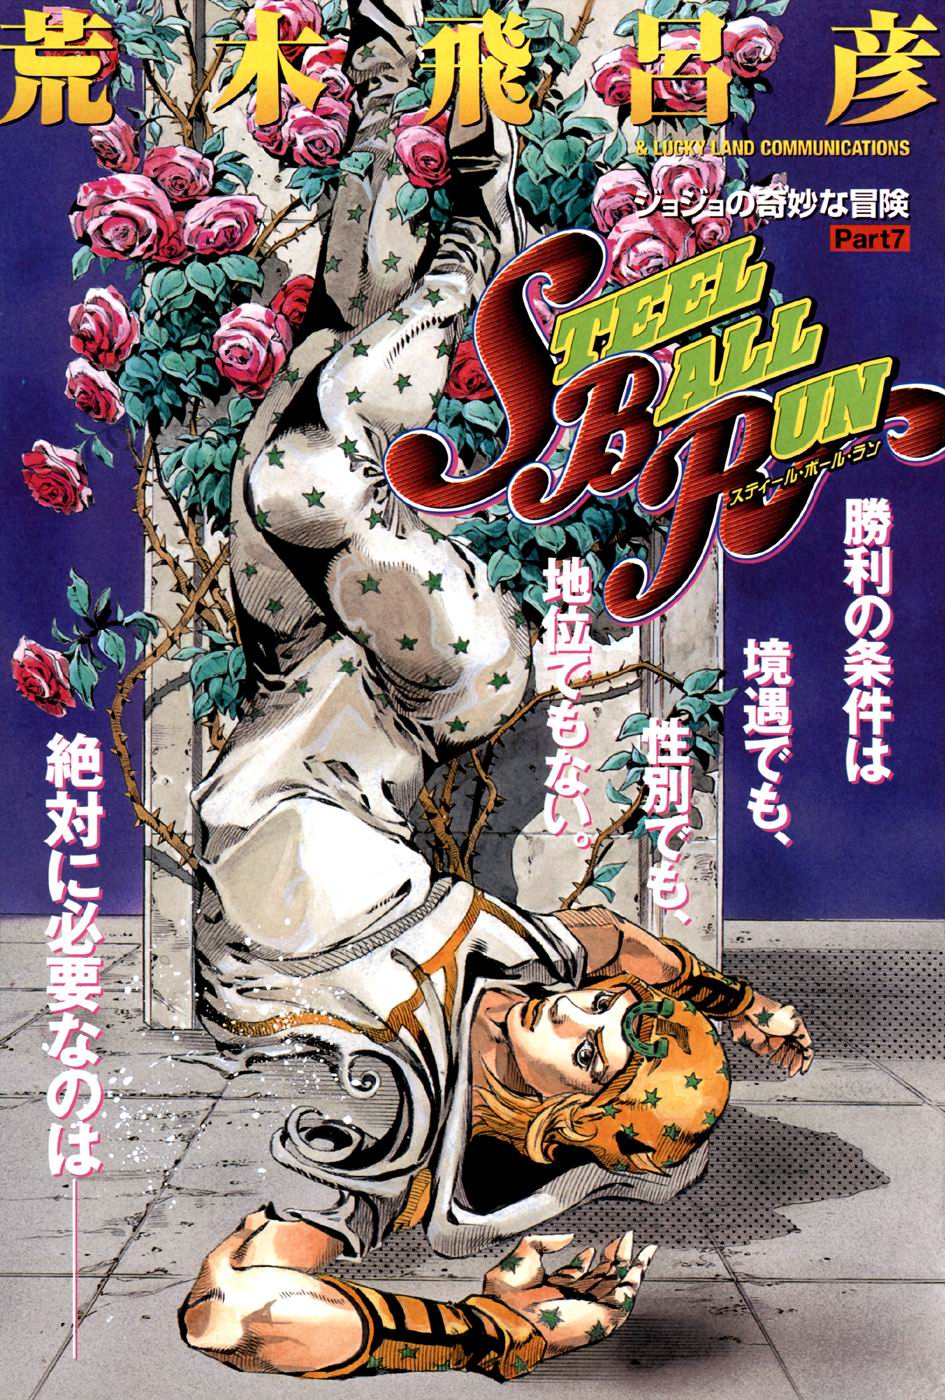 SBR Chapter 59 Magazine Cover A